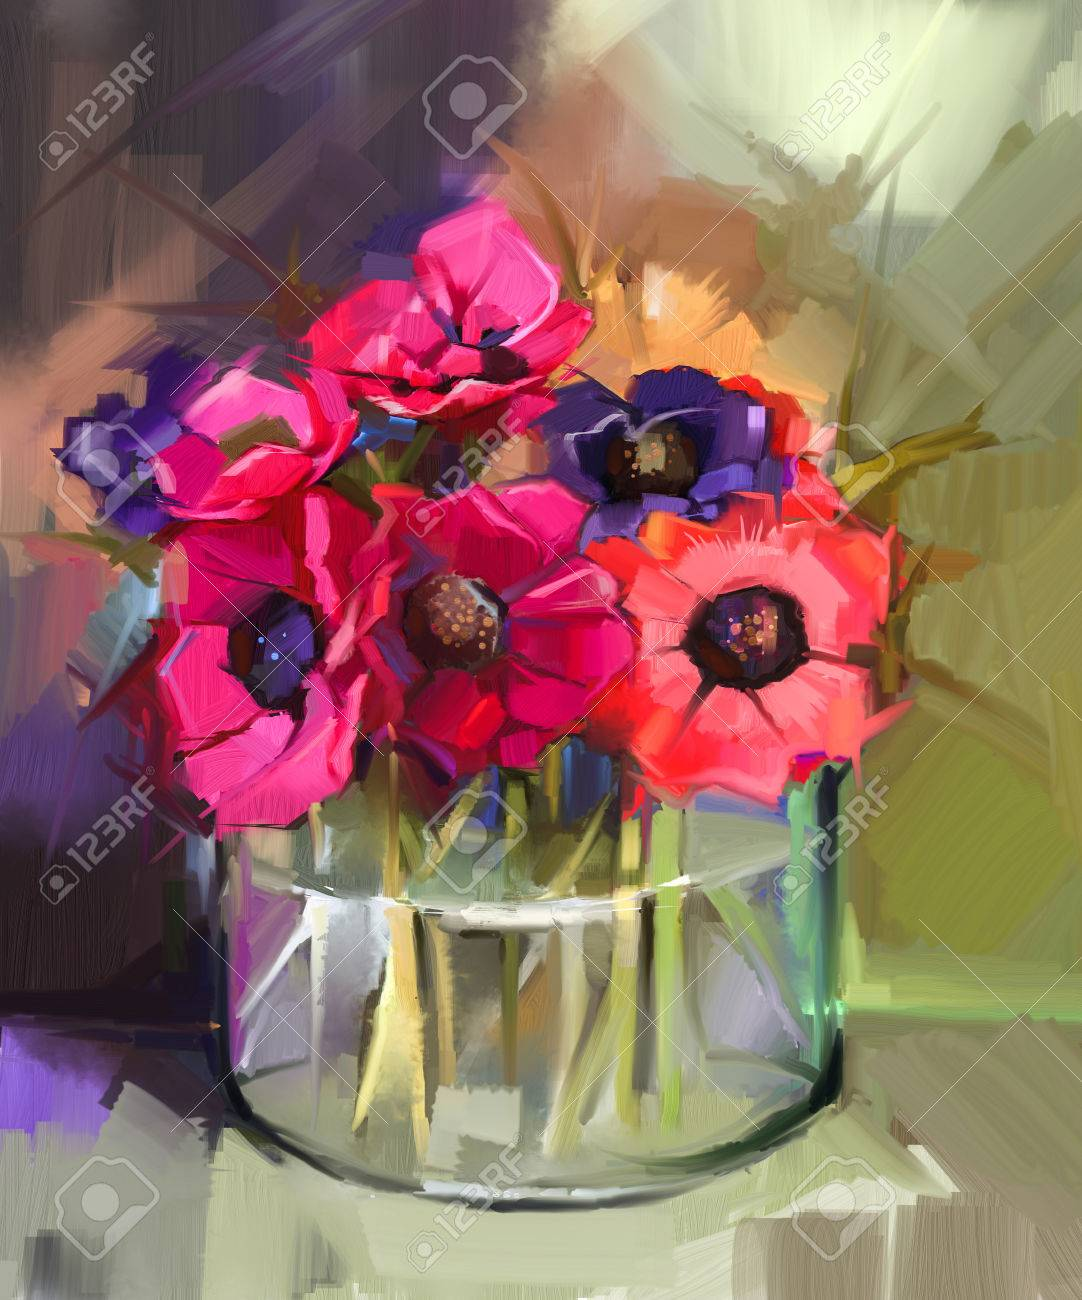 Still life a bouquet of flowers oil painting red anemones flower still life a bouquet of flowers oil painting red anemones flower in glass vase izmirmasajfo